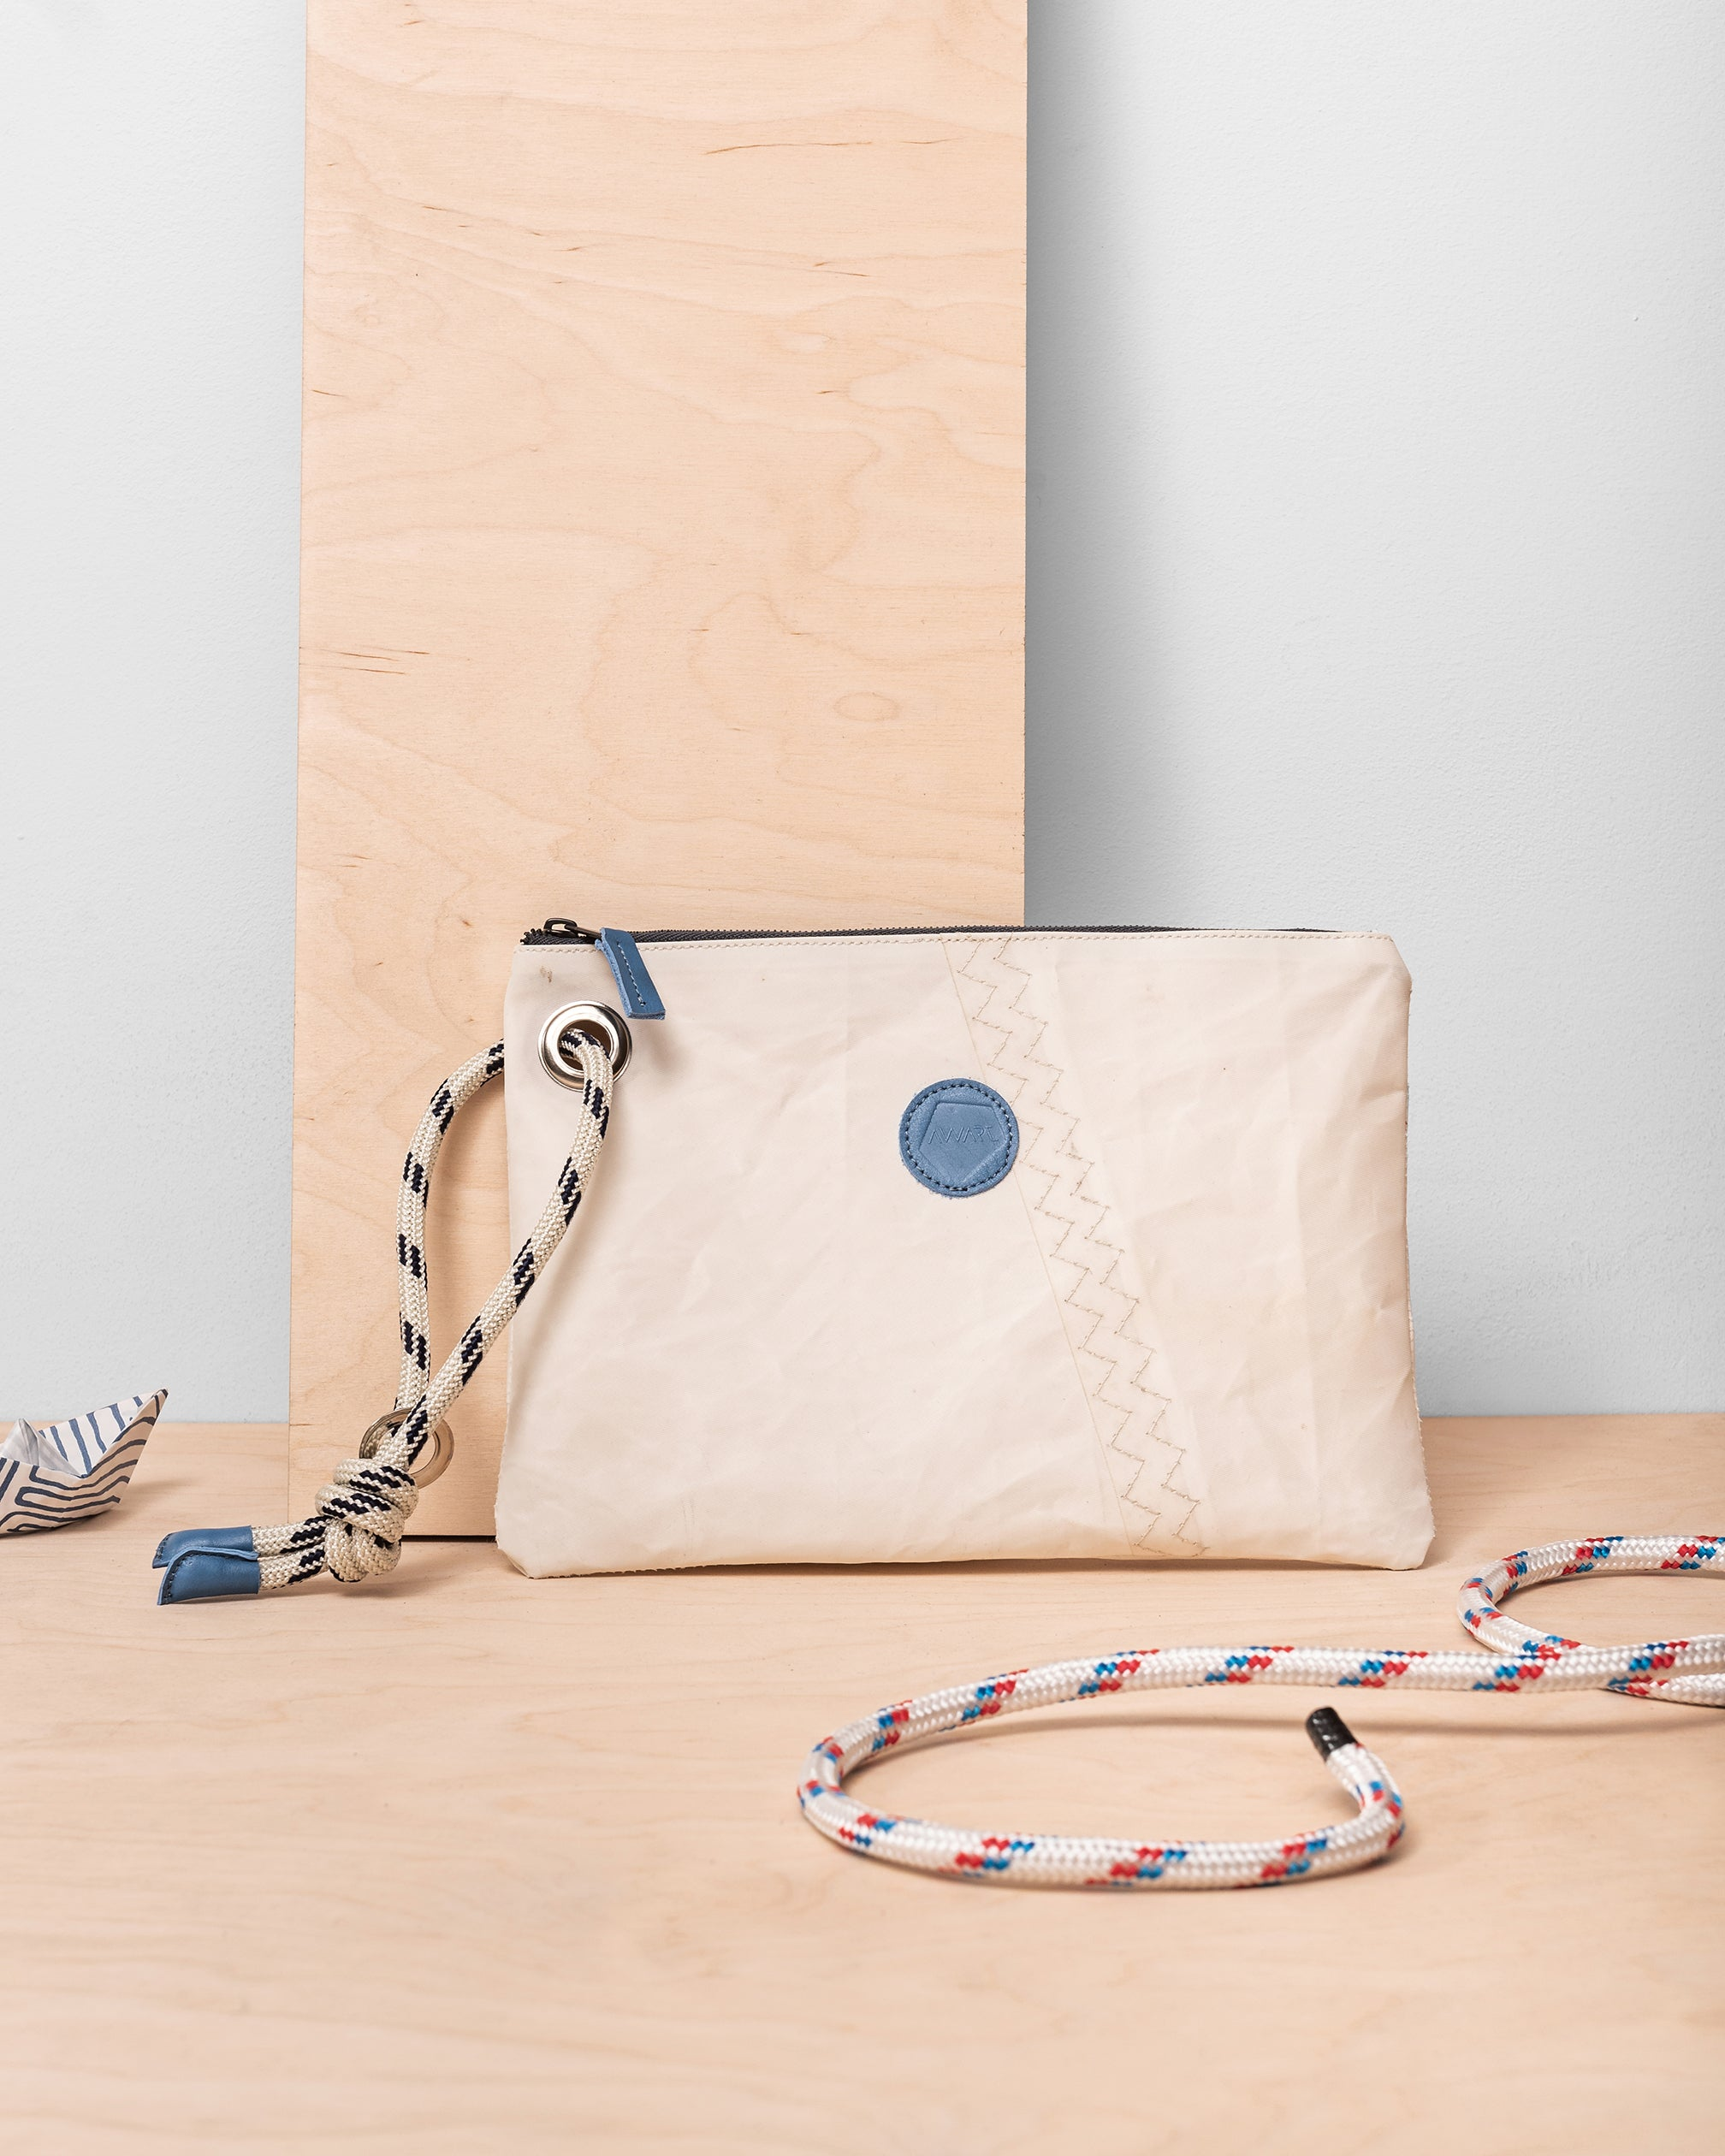 Sails Cosmetic Bag